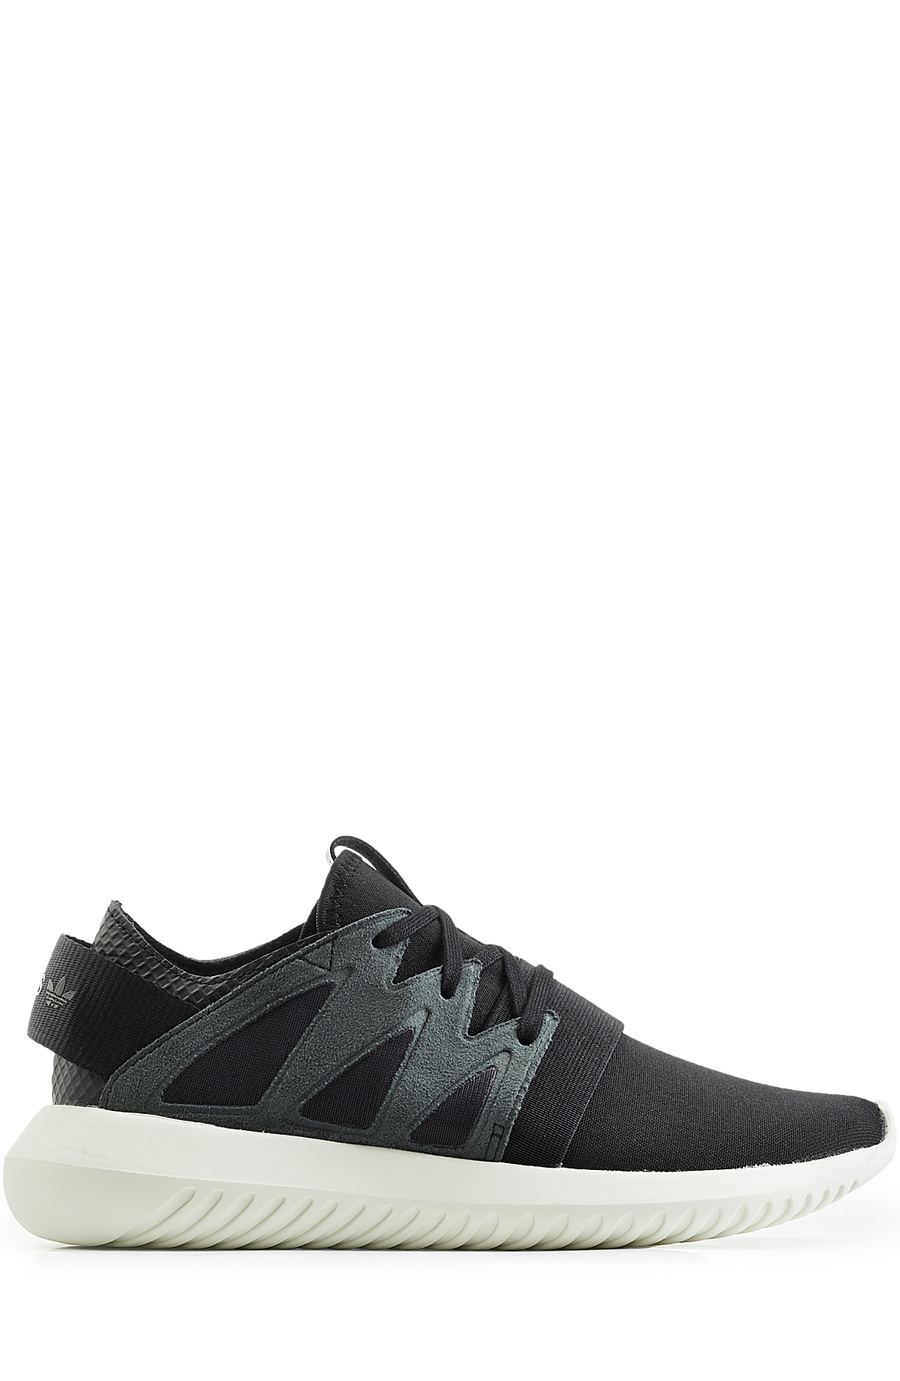 Adidas Originals Tubular Viral Sneakers With Leather In Black